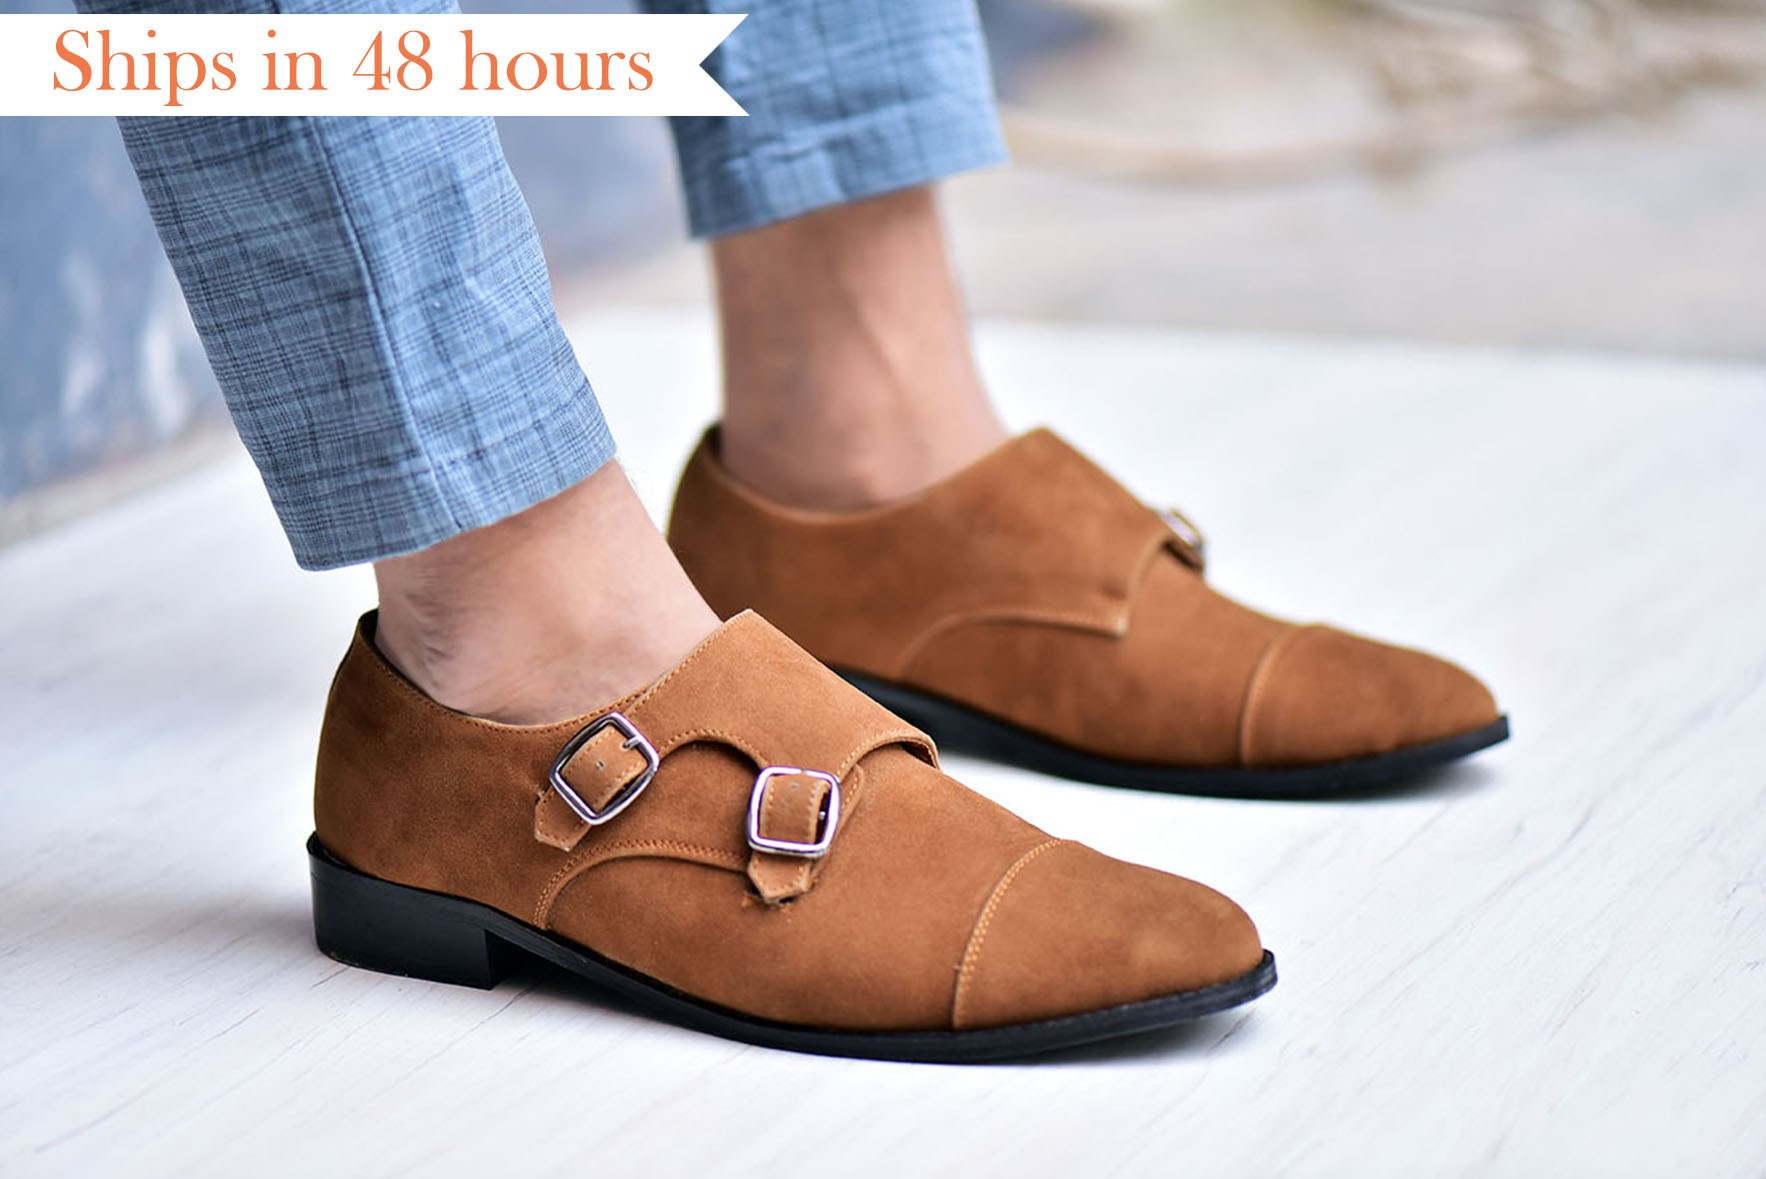 d5247369b5b5 Street Style Store Official - Buy latest collection of Men Shoes ...